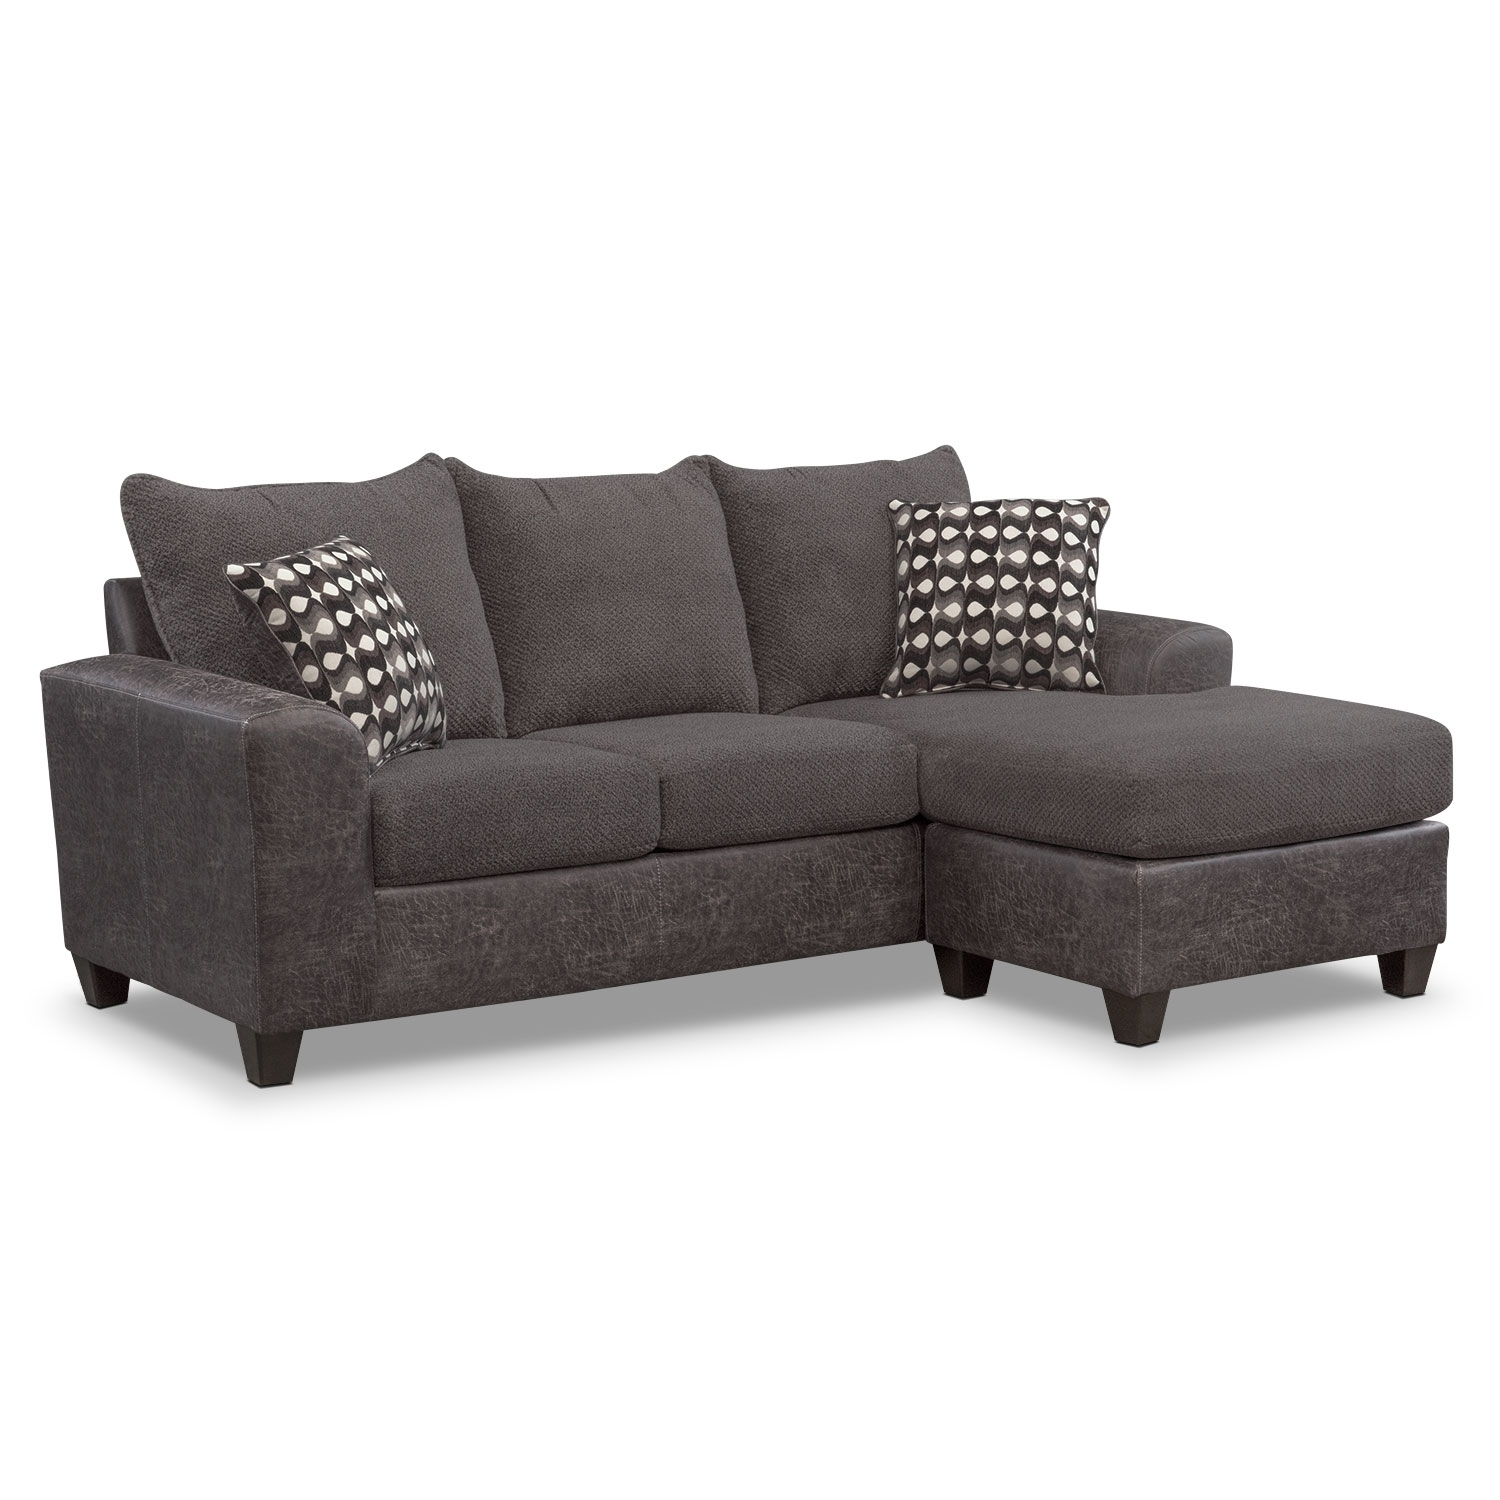 Sofas And Couches | Living Room Seating | Value City Furniture And with Aquarius Dark Grey 2 Piece Sectionals With Raf Chaise (Image 29 of 30)